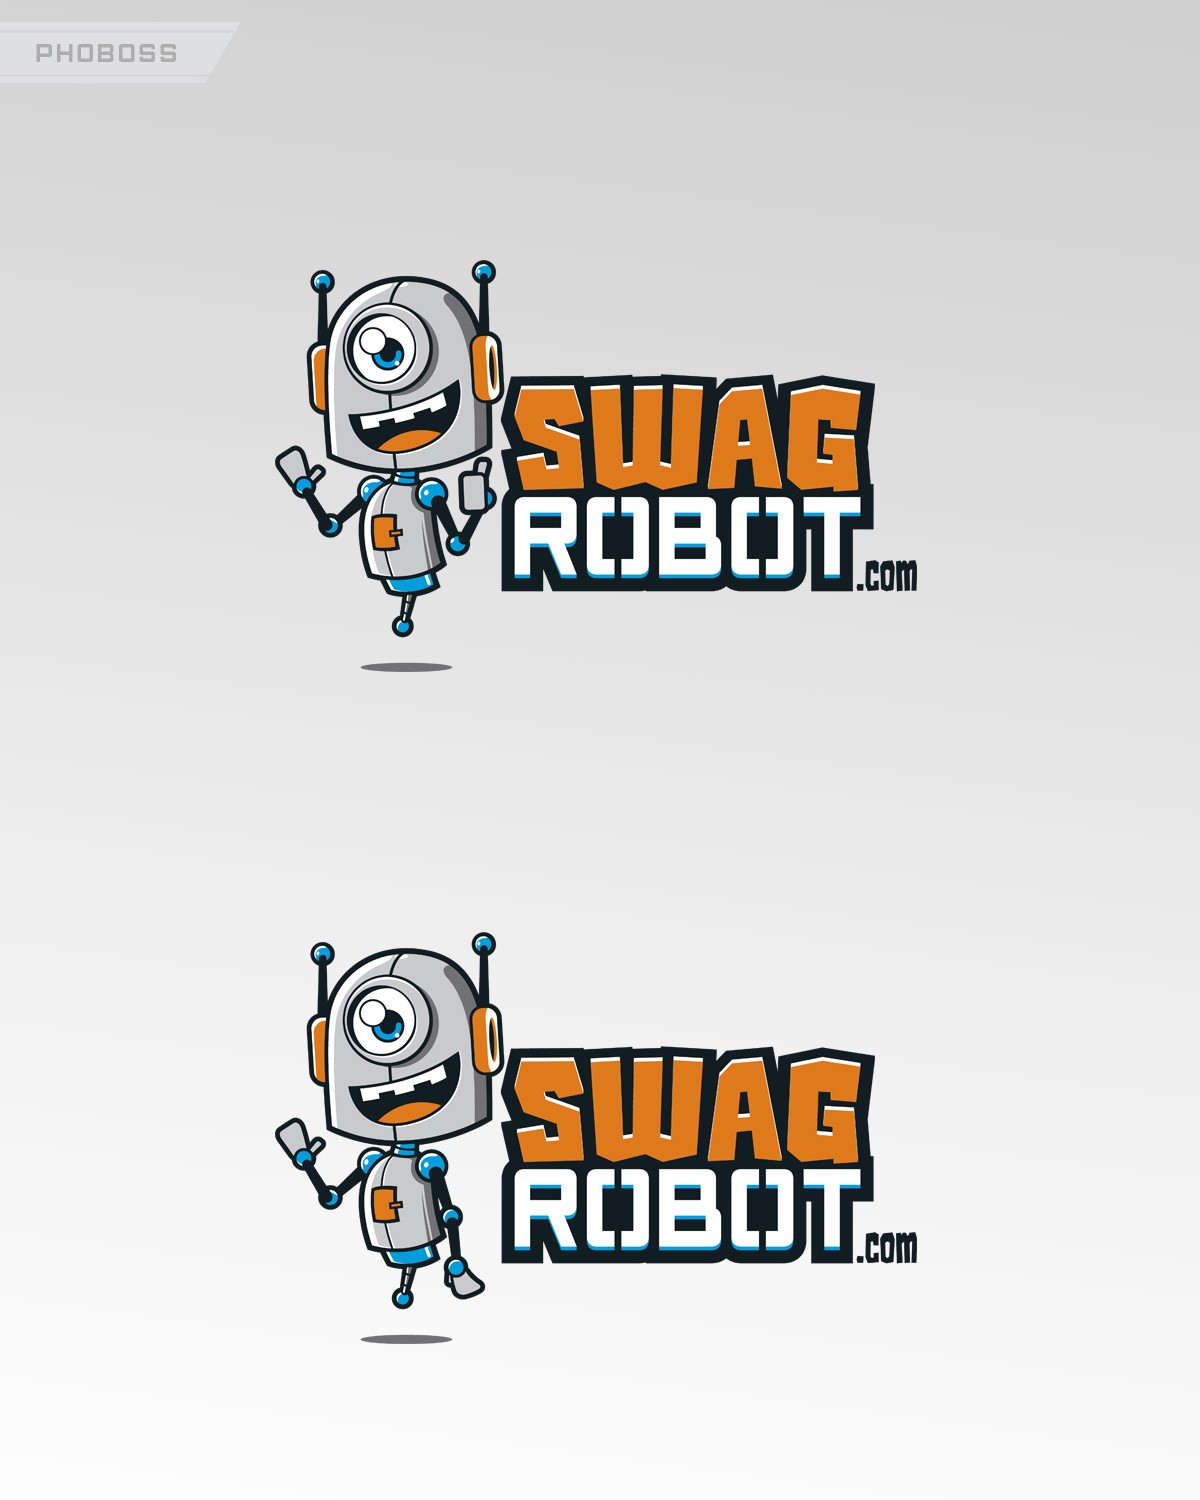 Creative, simple, and fun. We need a Robot and logo!